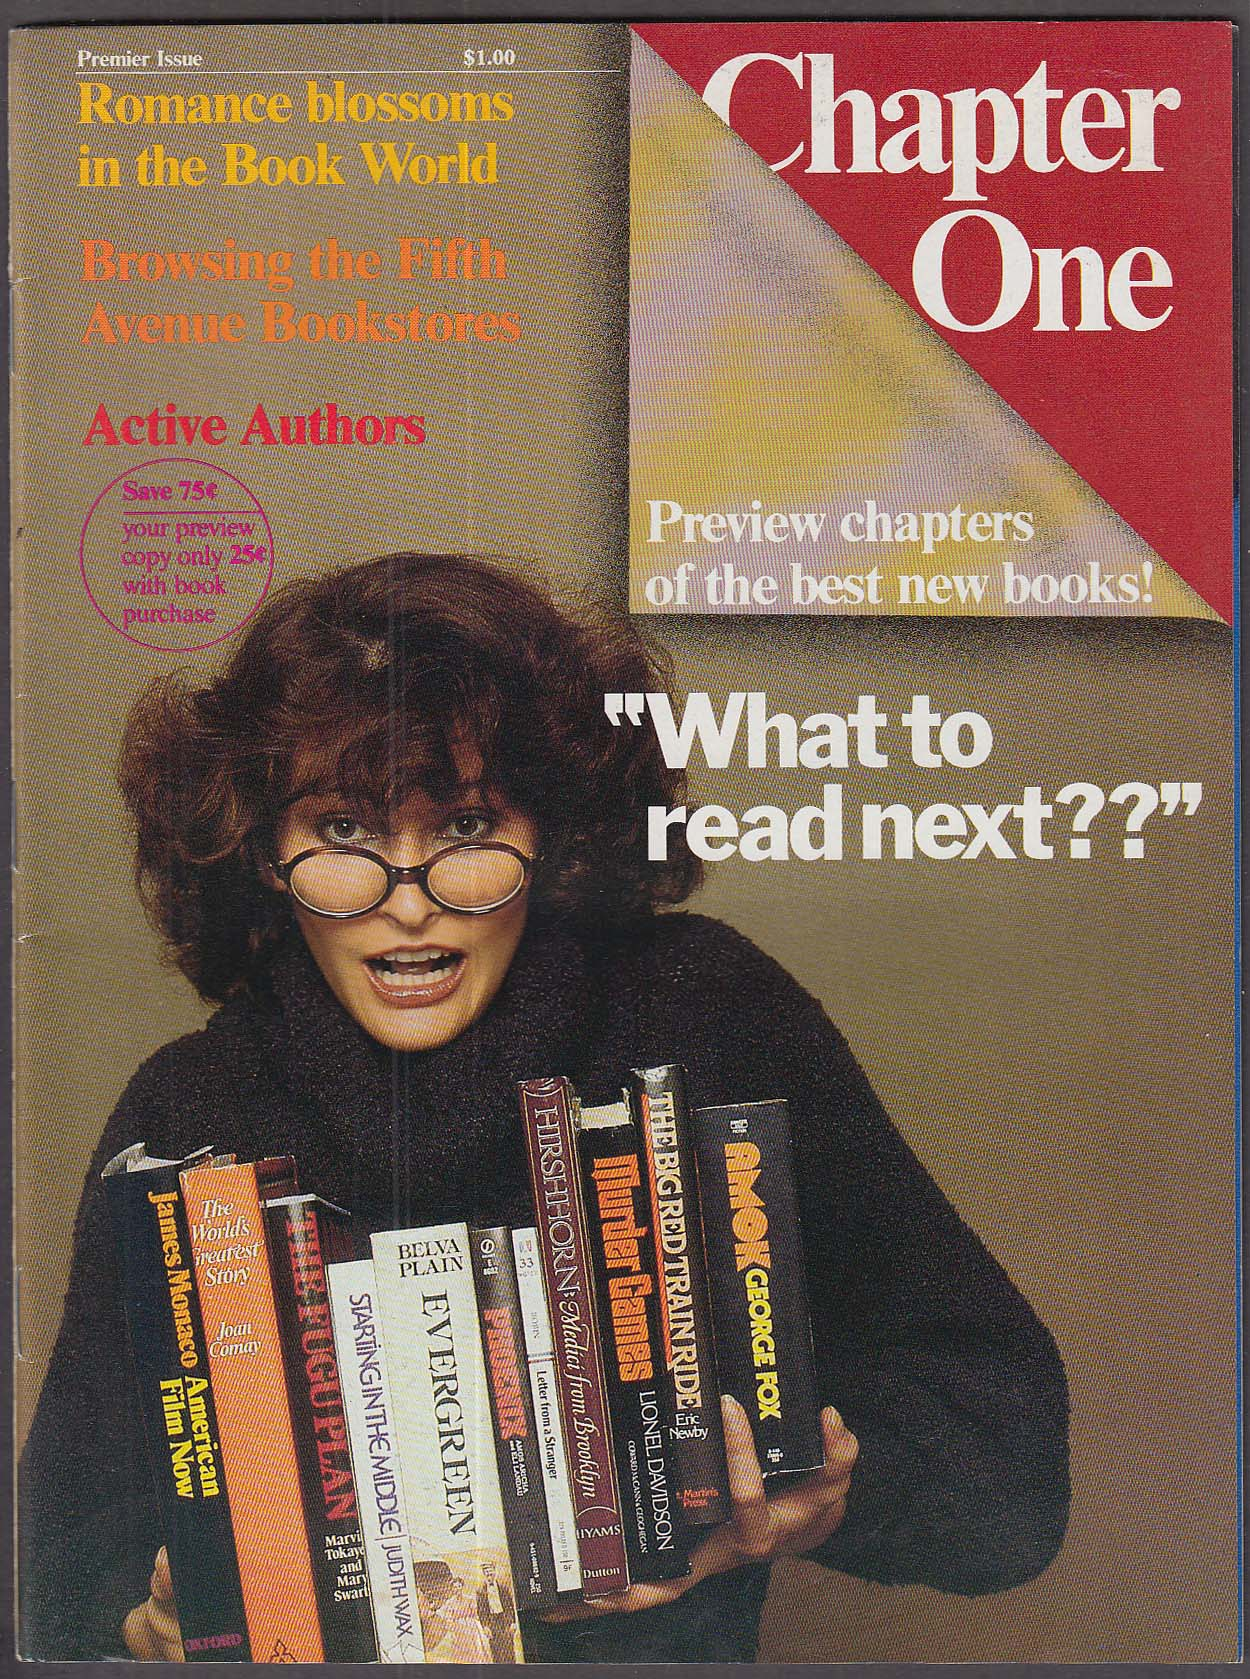 CHAPTER ONE #1 Fifth Avenue Bookstores; Romance; Reviews ++ 5-6 1979